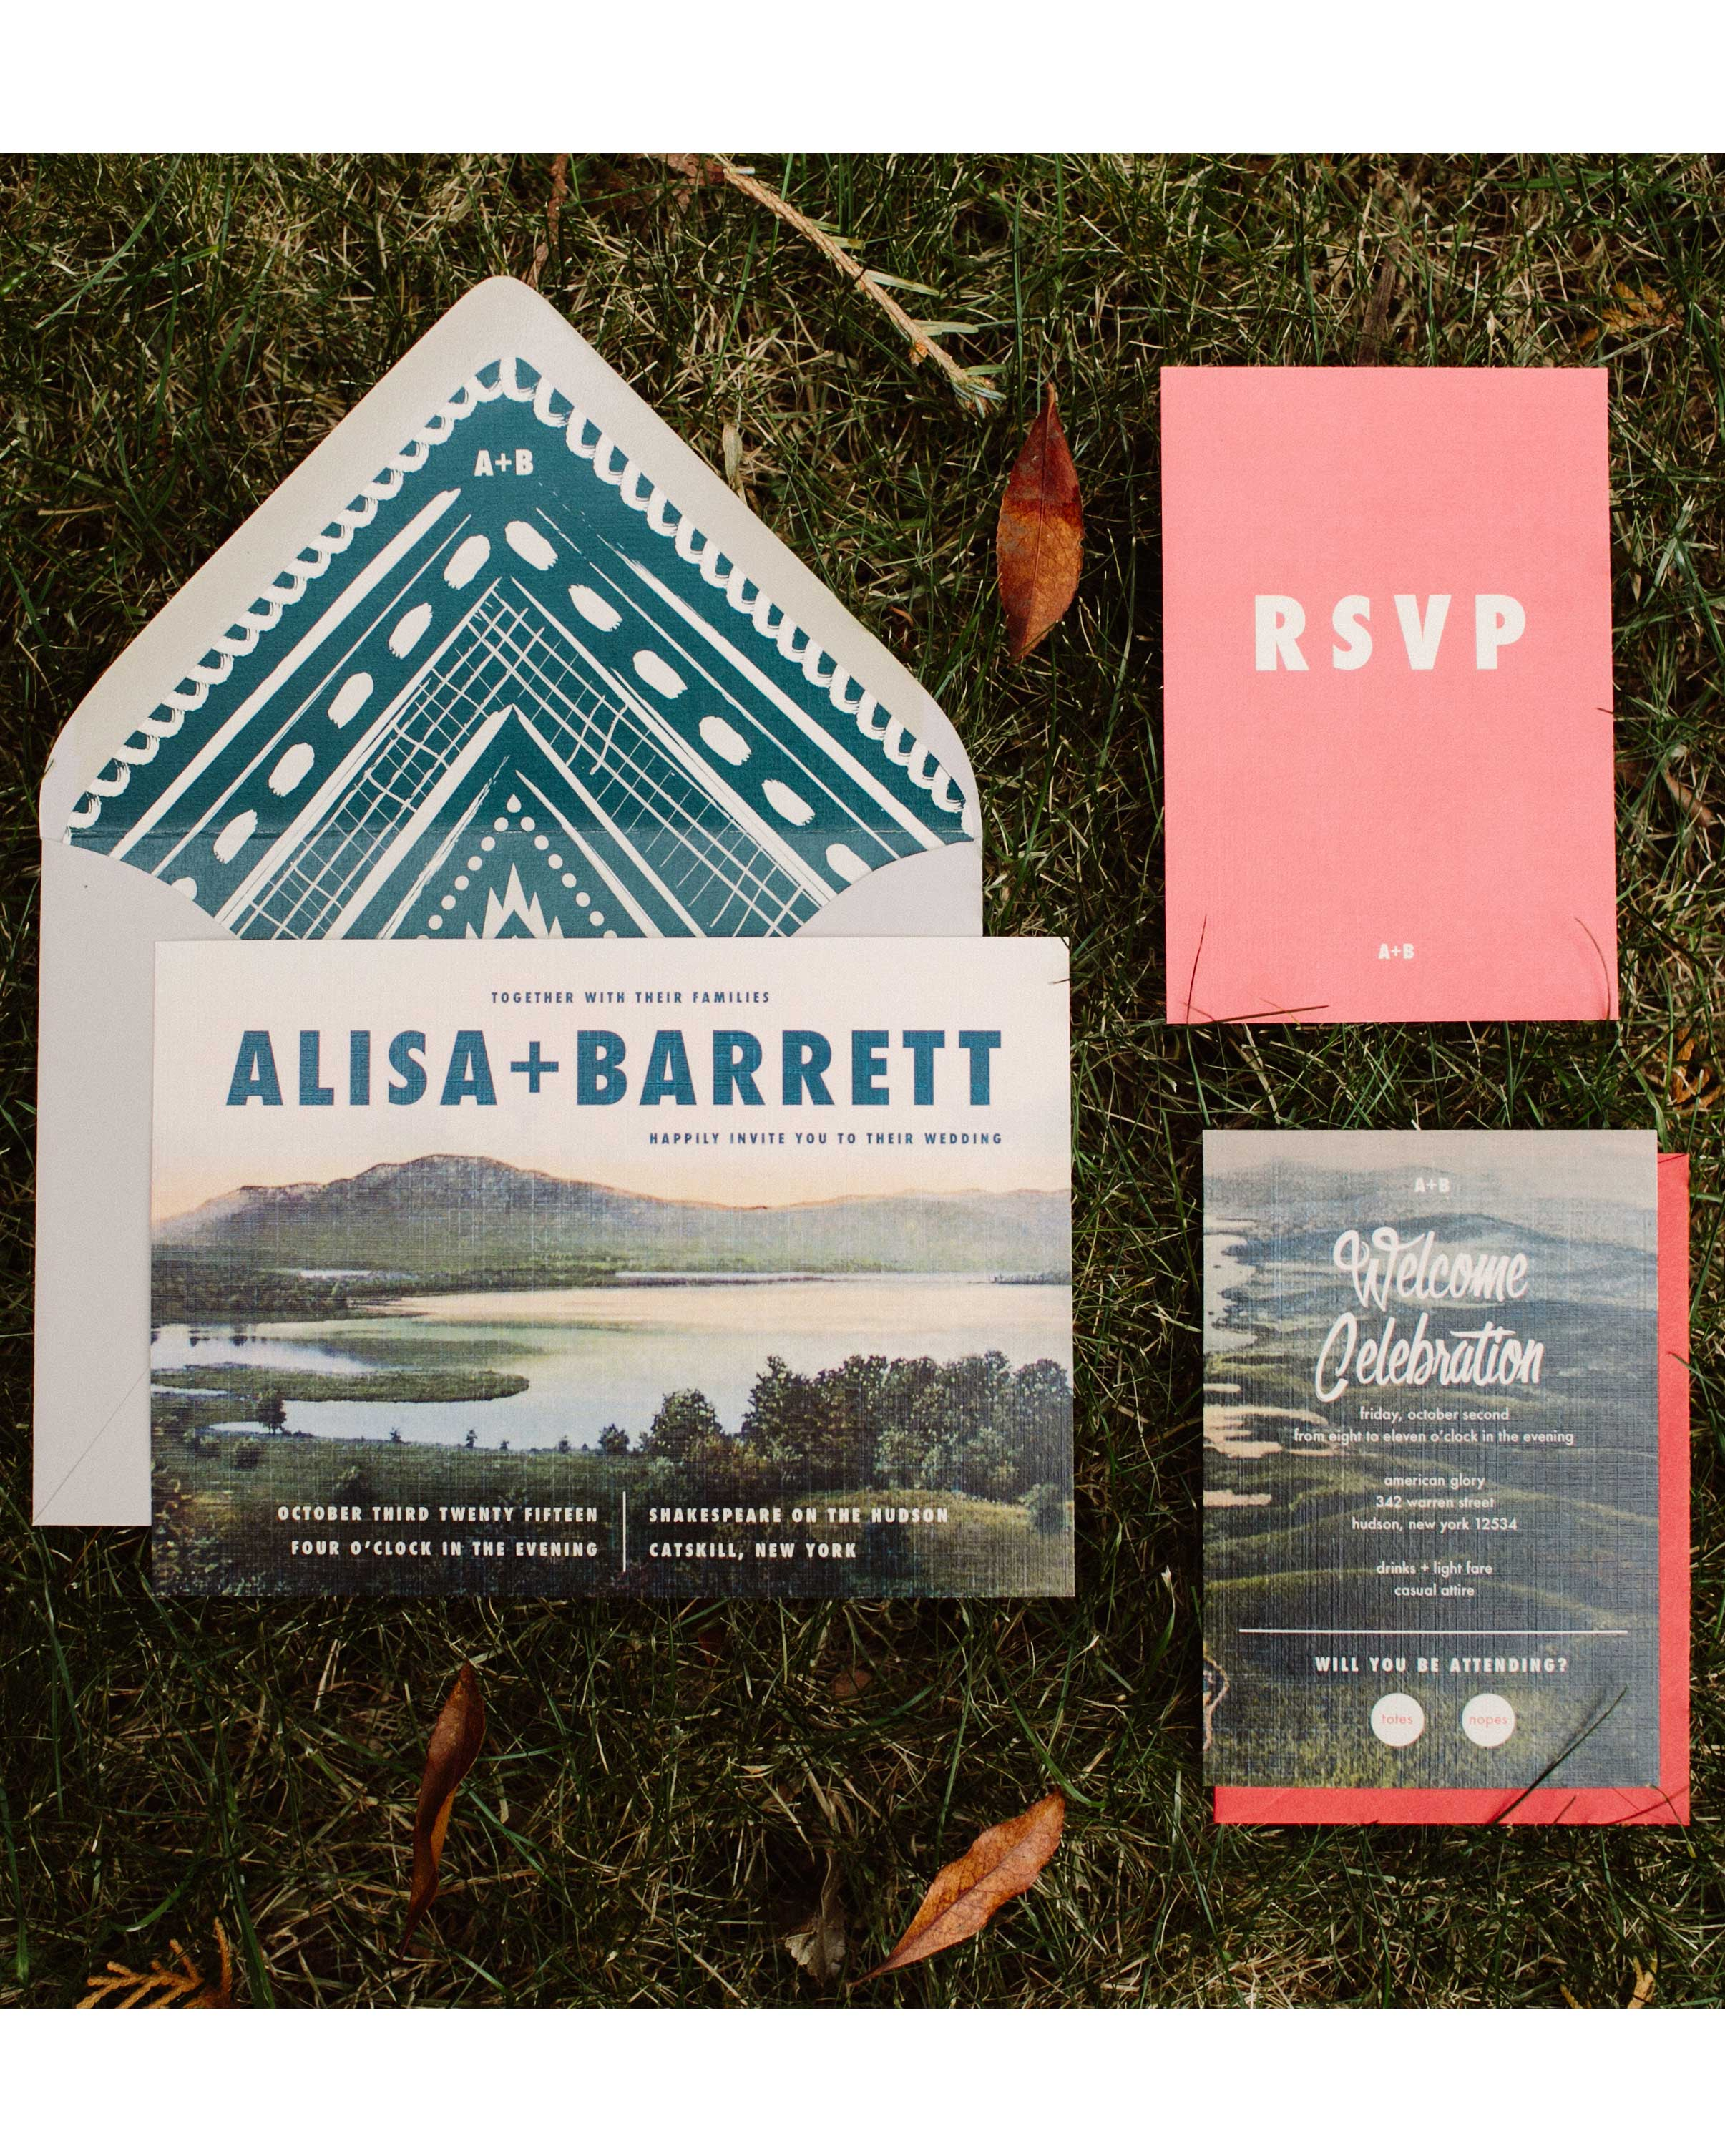 alisa-barrett-wedding-invite-16-s113048-0716.jpg